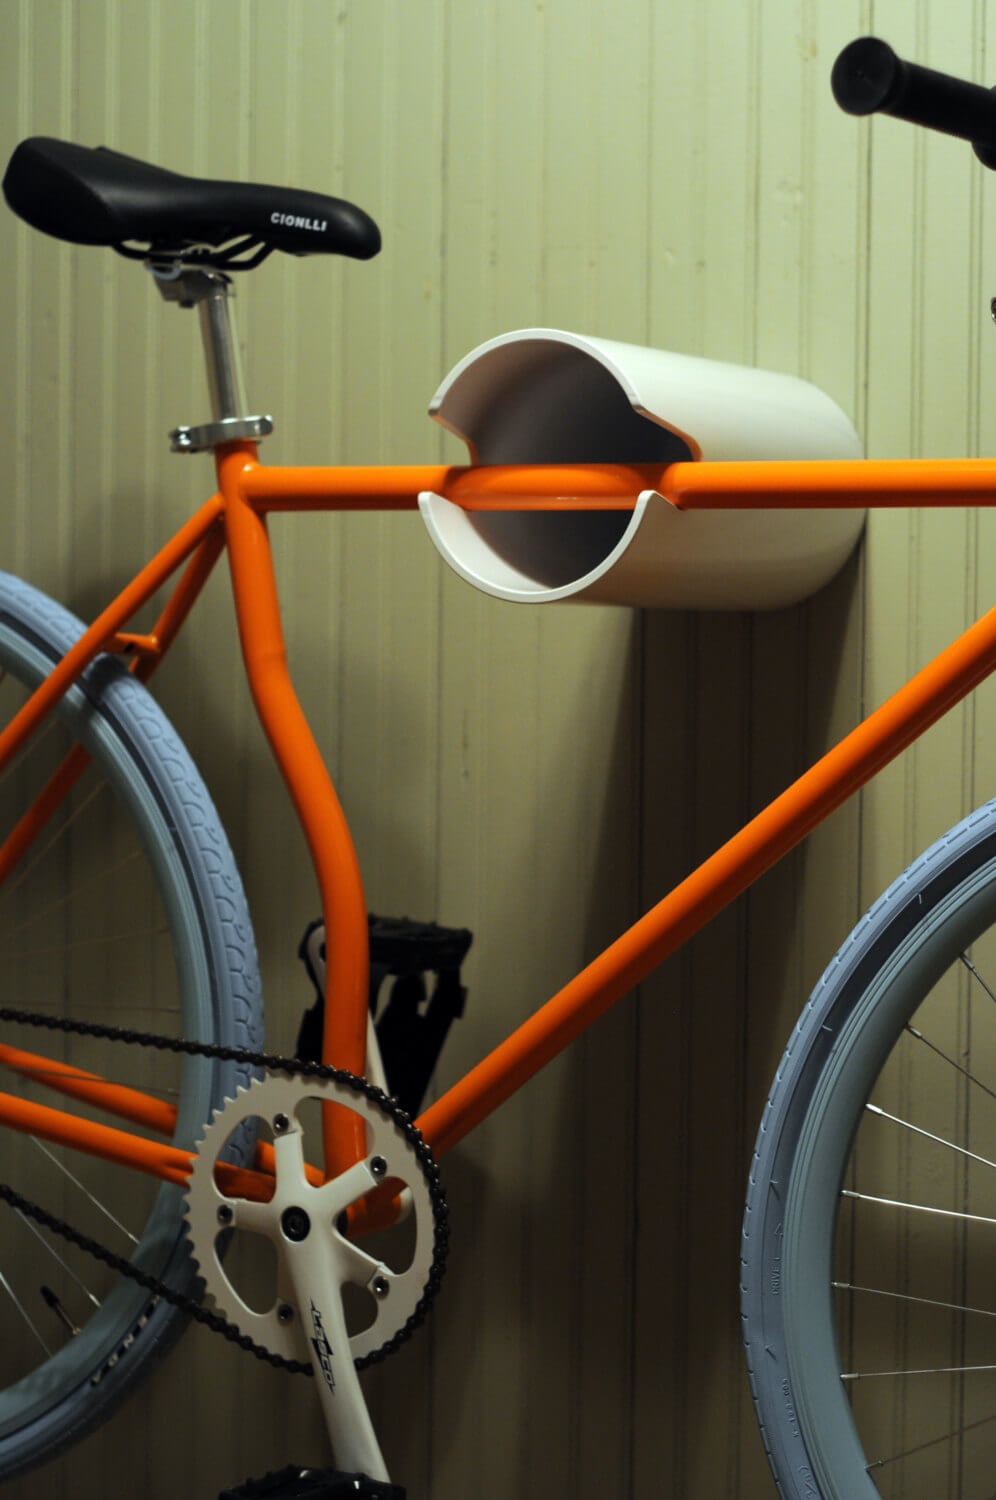 Simple Sideways Wall-Hanging Bicycle Mount